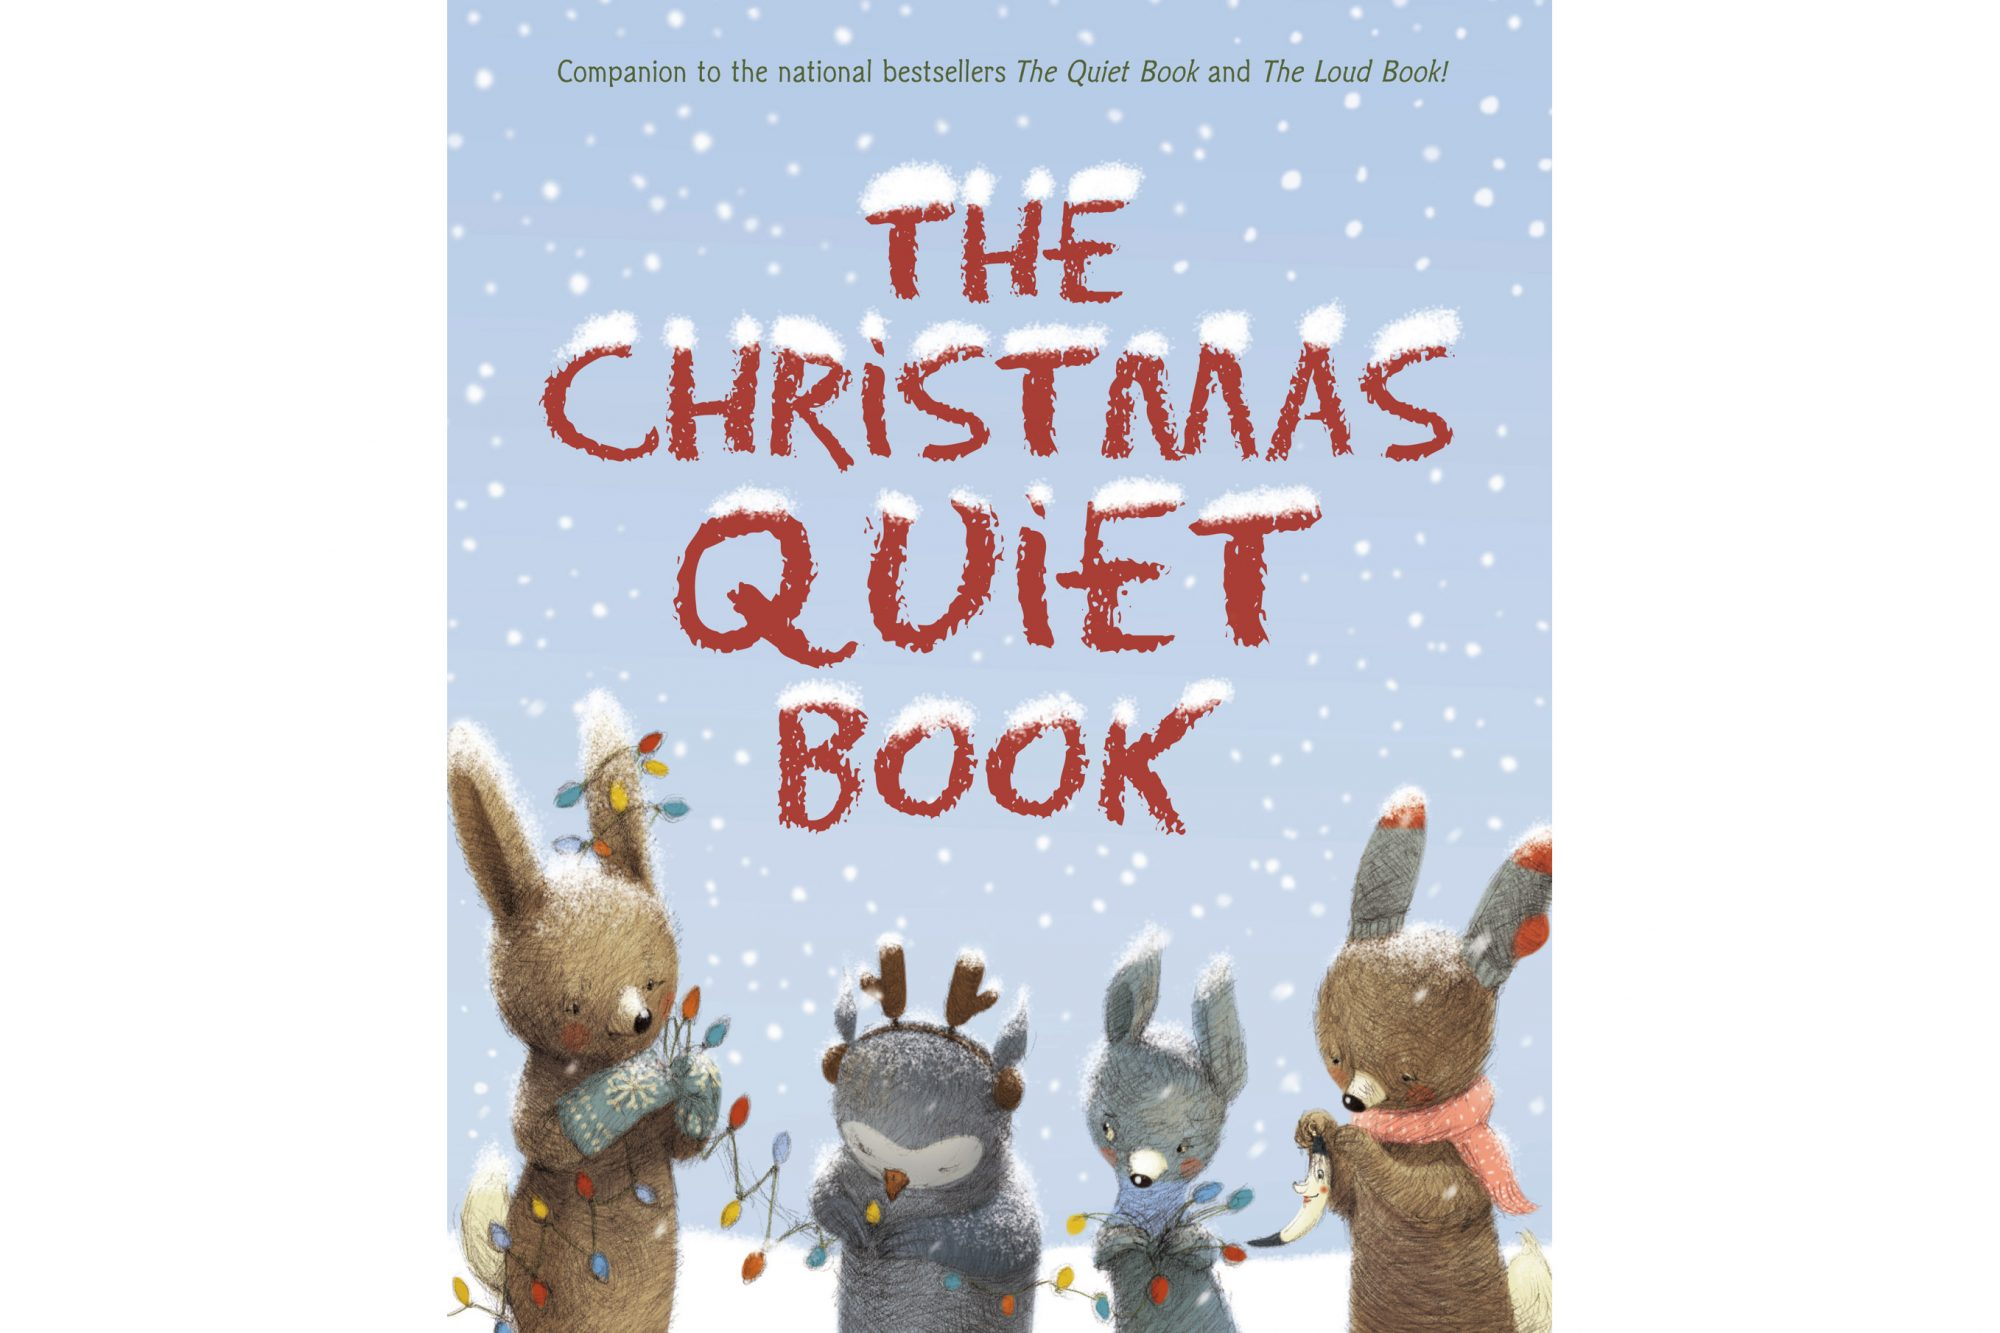 The Christmas Quiet Book, by Deborah Underwood and Renata Liwska